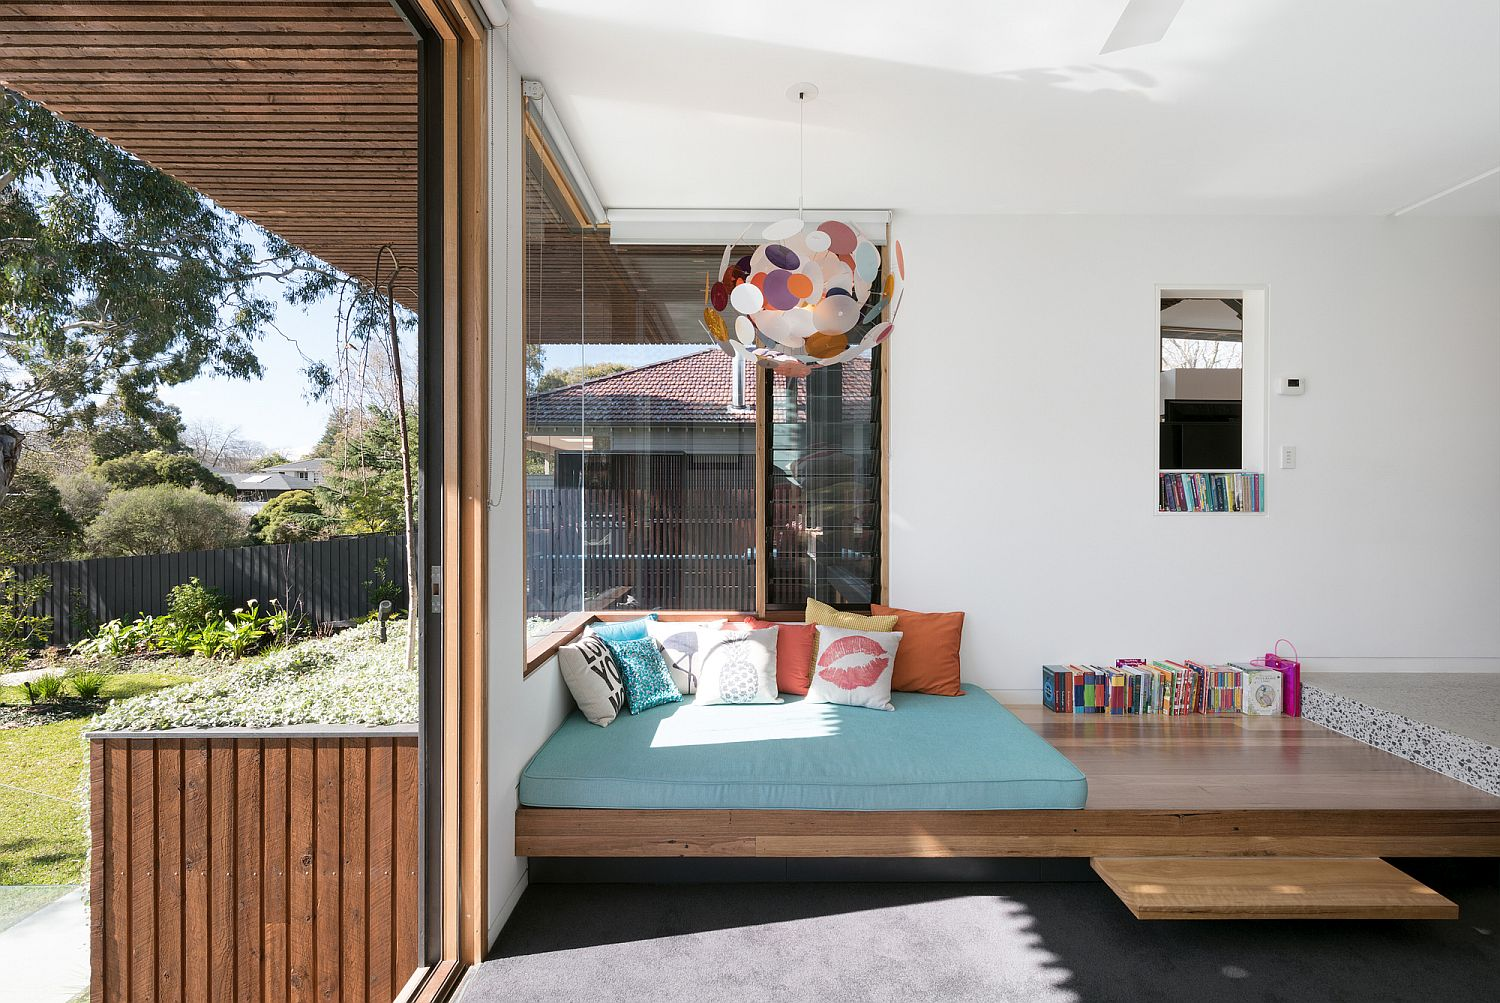 Comfy window seat and daybed